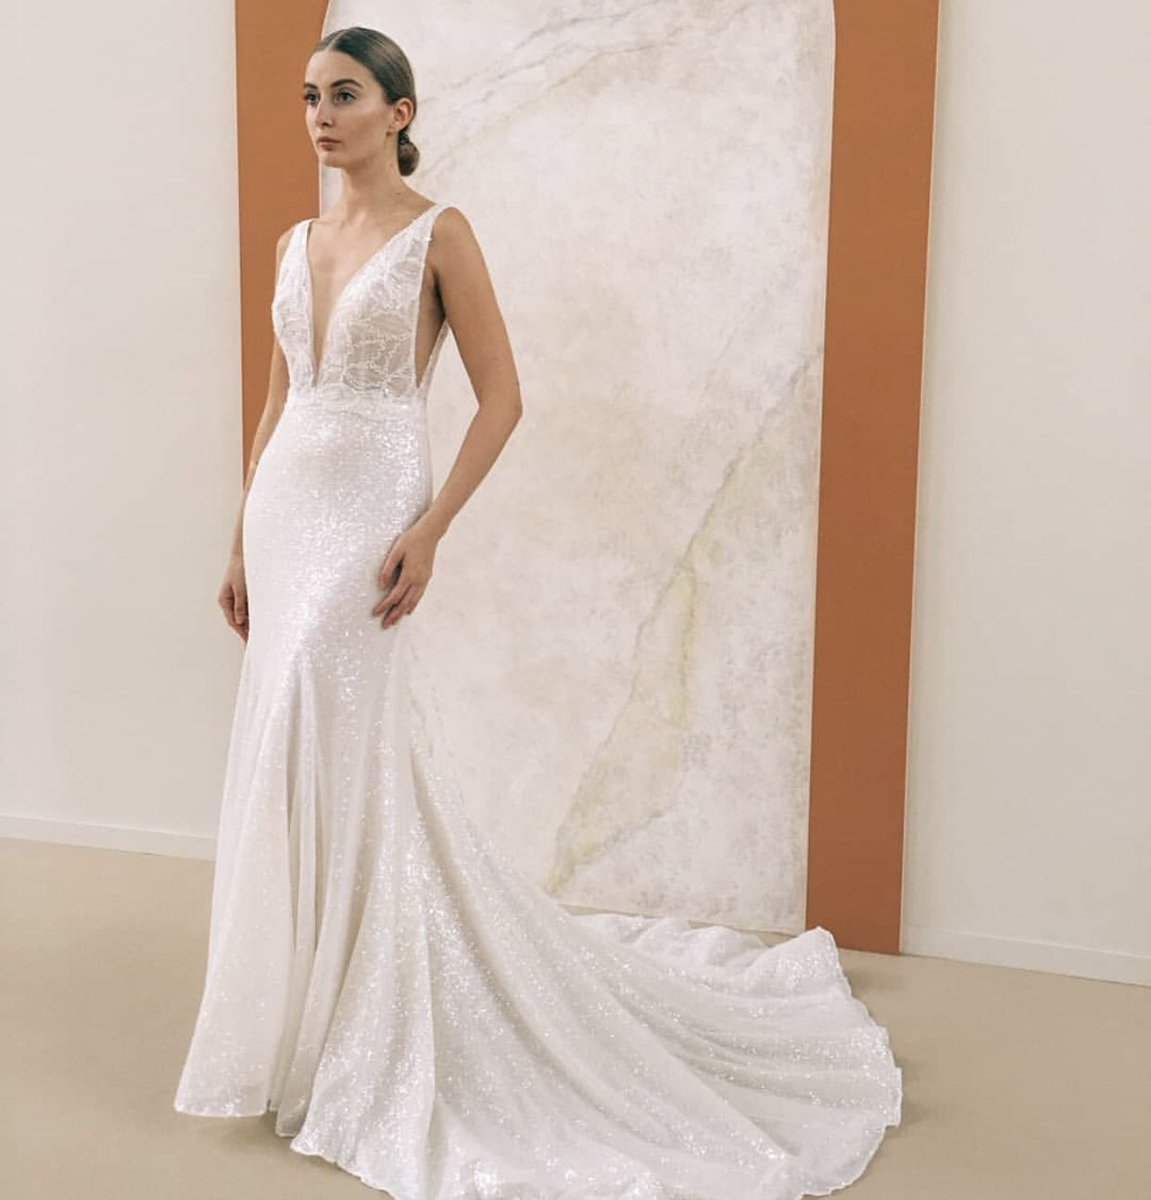 Wedding Gowns London: Wedding Dress Shops And Bridal Shops In London And Kent